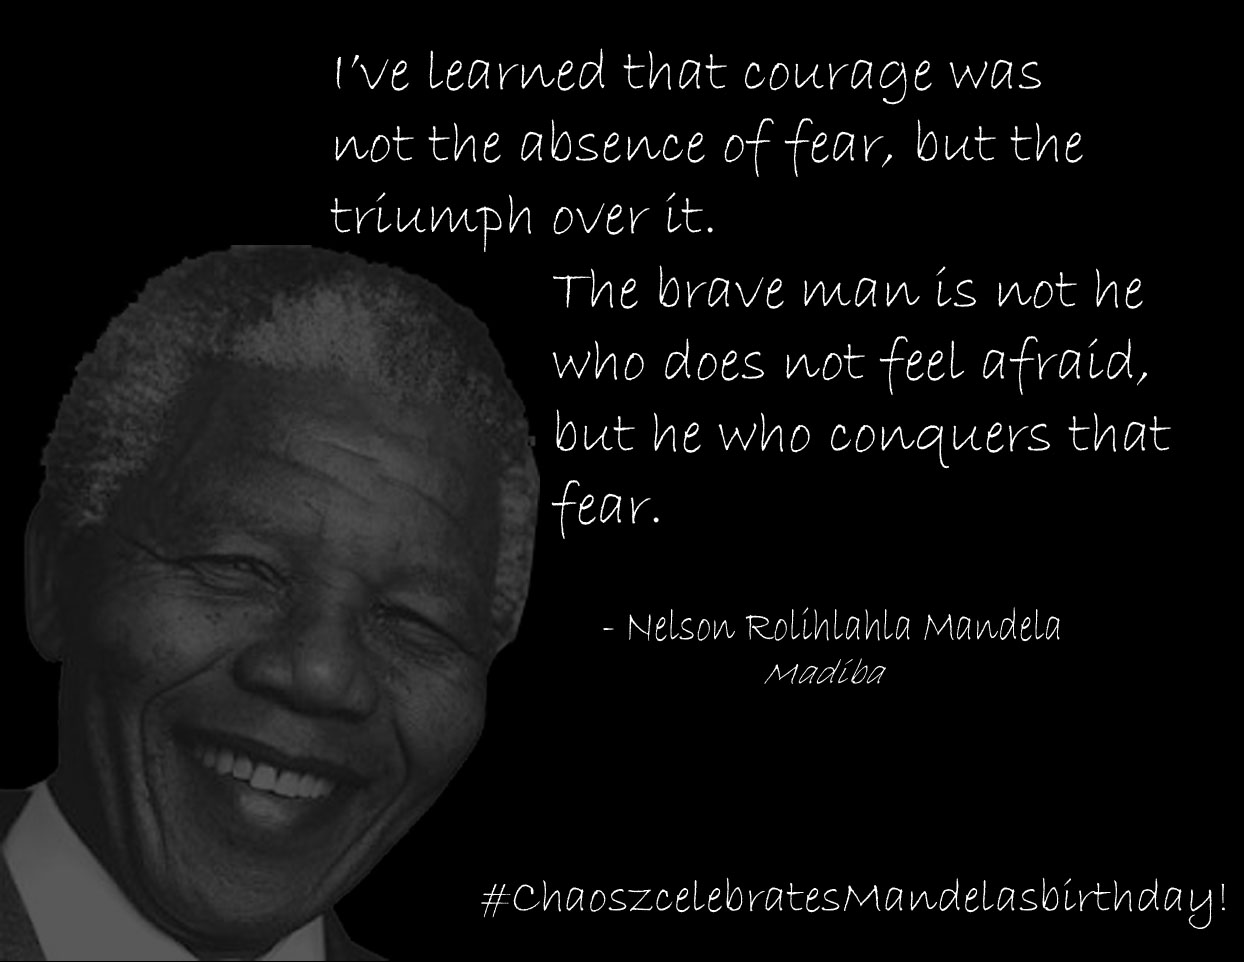 Mandela Quotes About Love An Inspiring Collection Of Nelson Mandela Quotes And Pictures